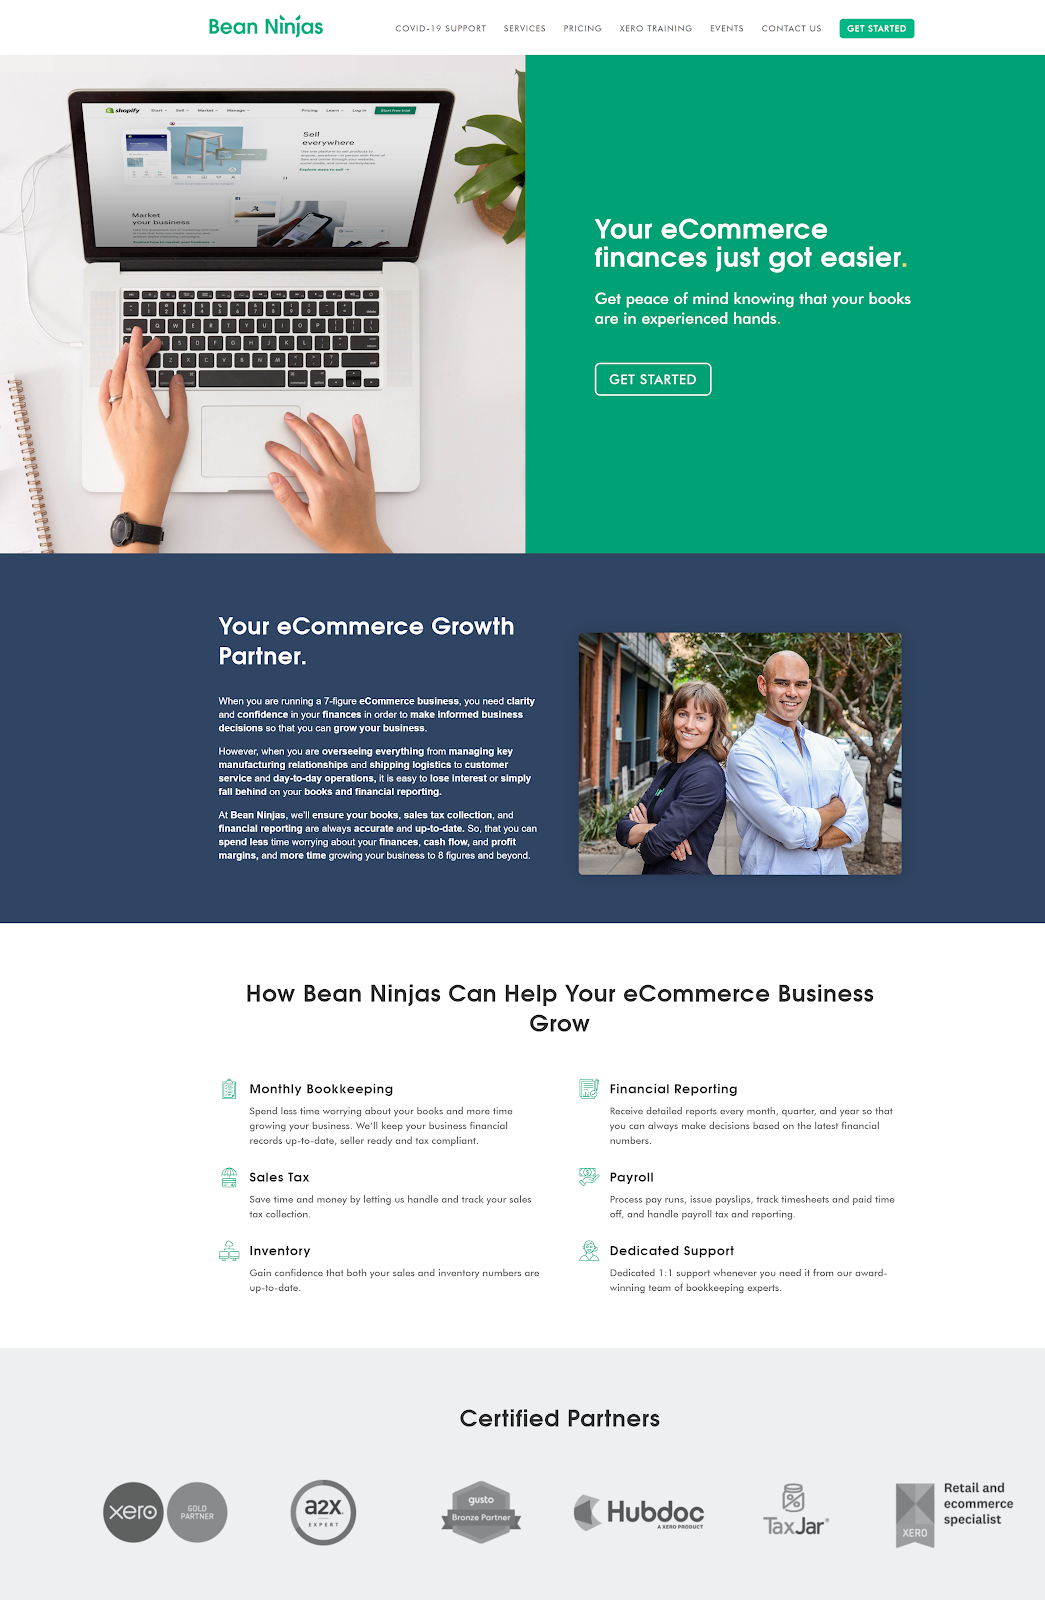 Bean Ninjas' eCommerce growth packages